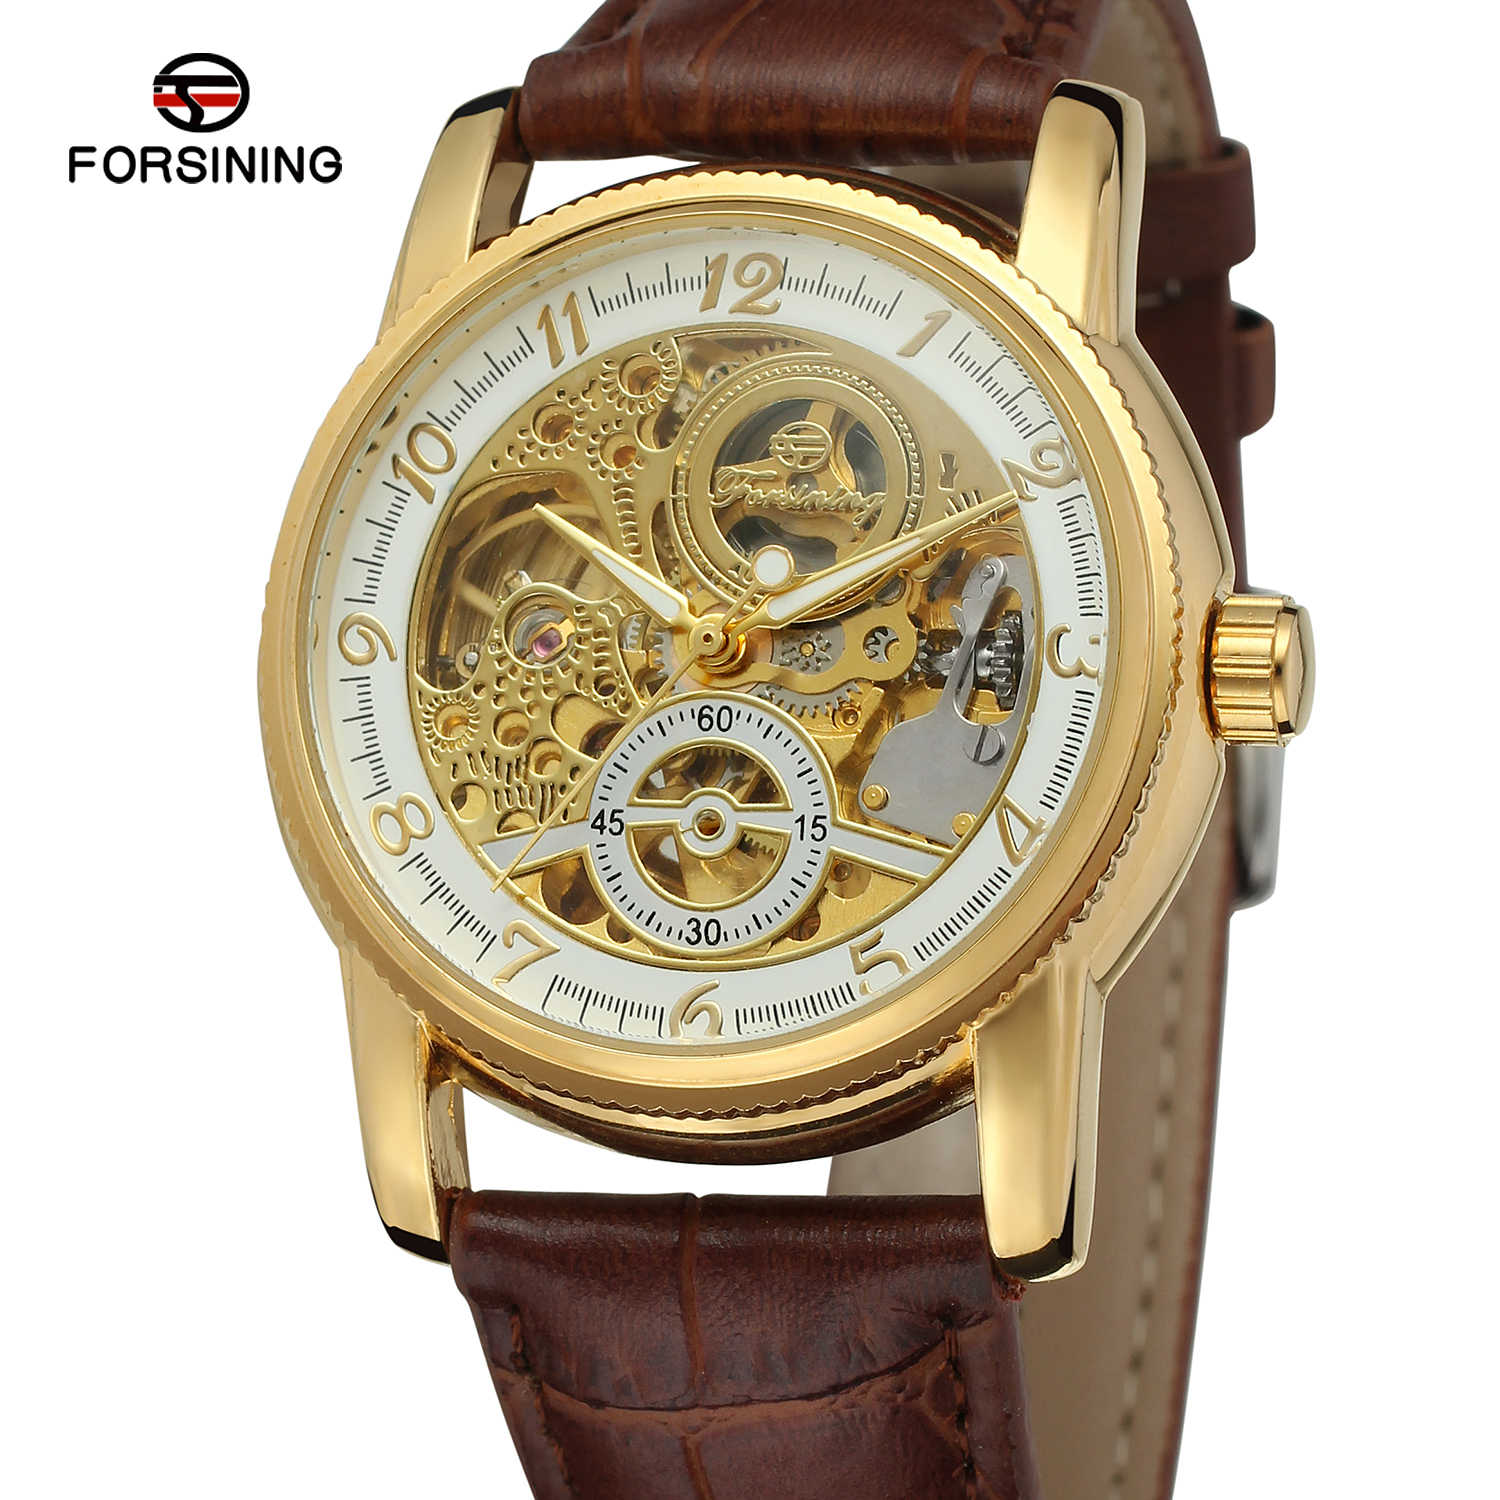 Fashion Forsining Hollow Engraving Skeleton Casual Designer Black Golden Case Gear Bezel  Men Luxury Brand Automatic Wrist Watch